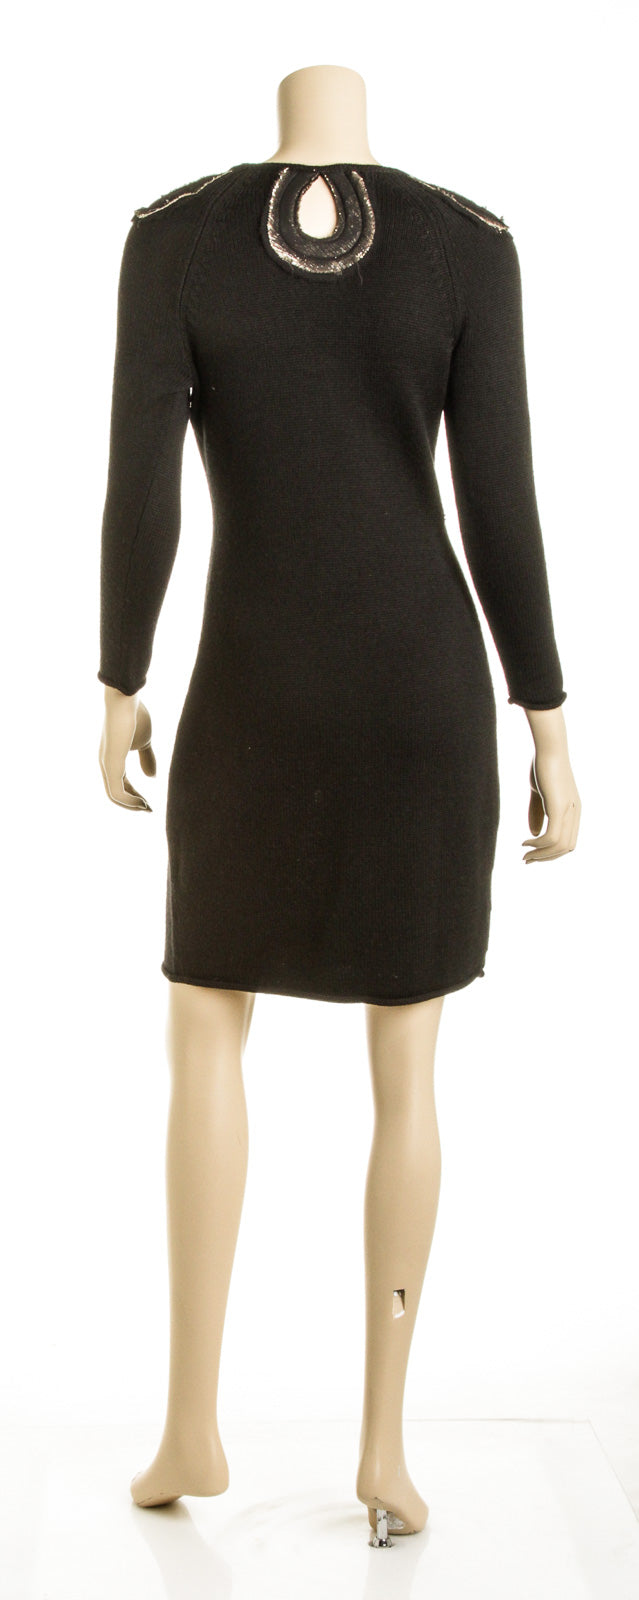 Ports 1961 Black Wool Long Sleeve Knit Dress (Size XXS)